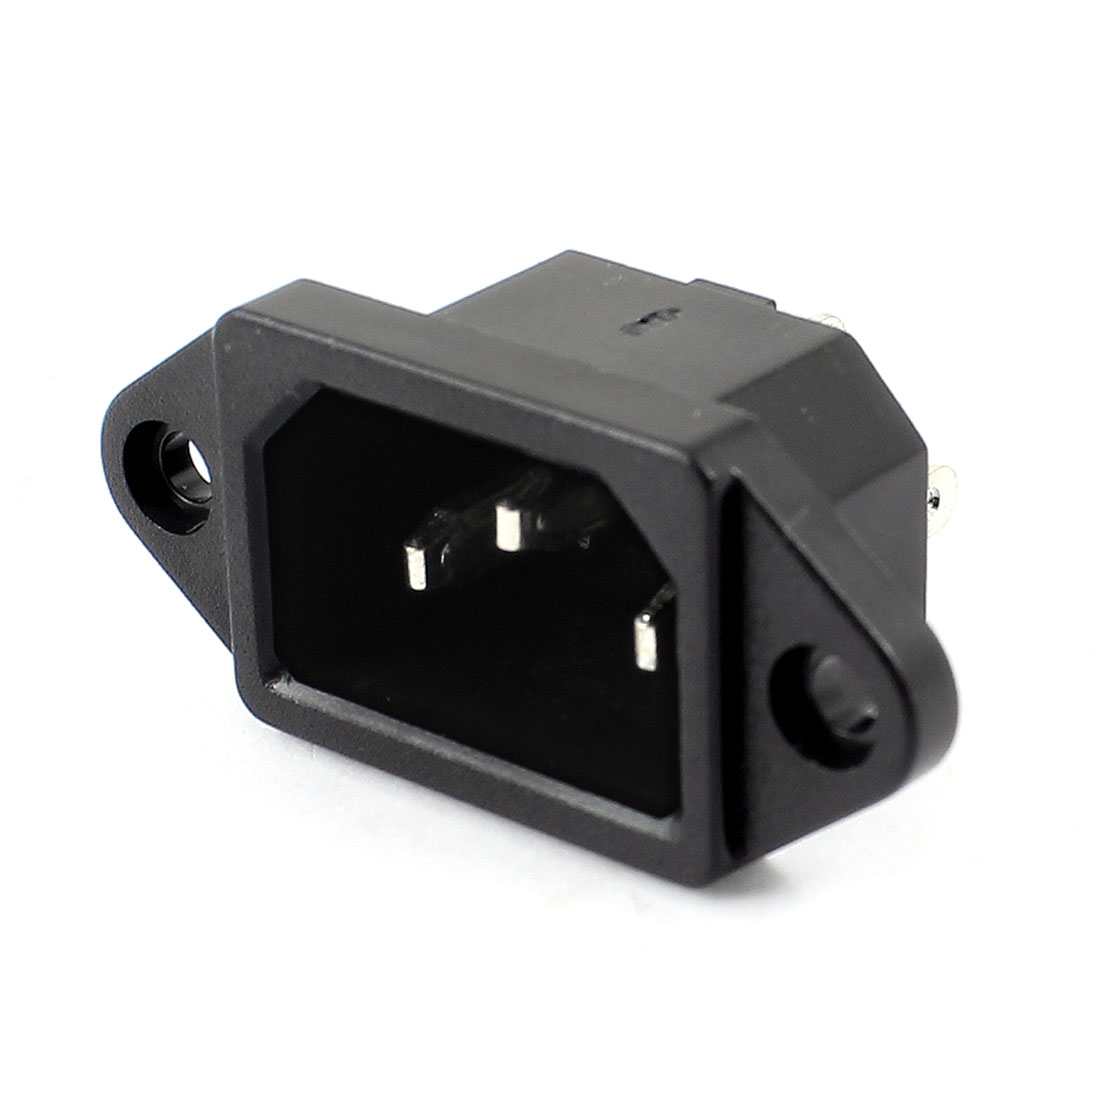 AC 250V 10A Pannel Mounted C14 3 Terminals Male Inlet Power Socket Black